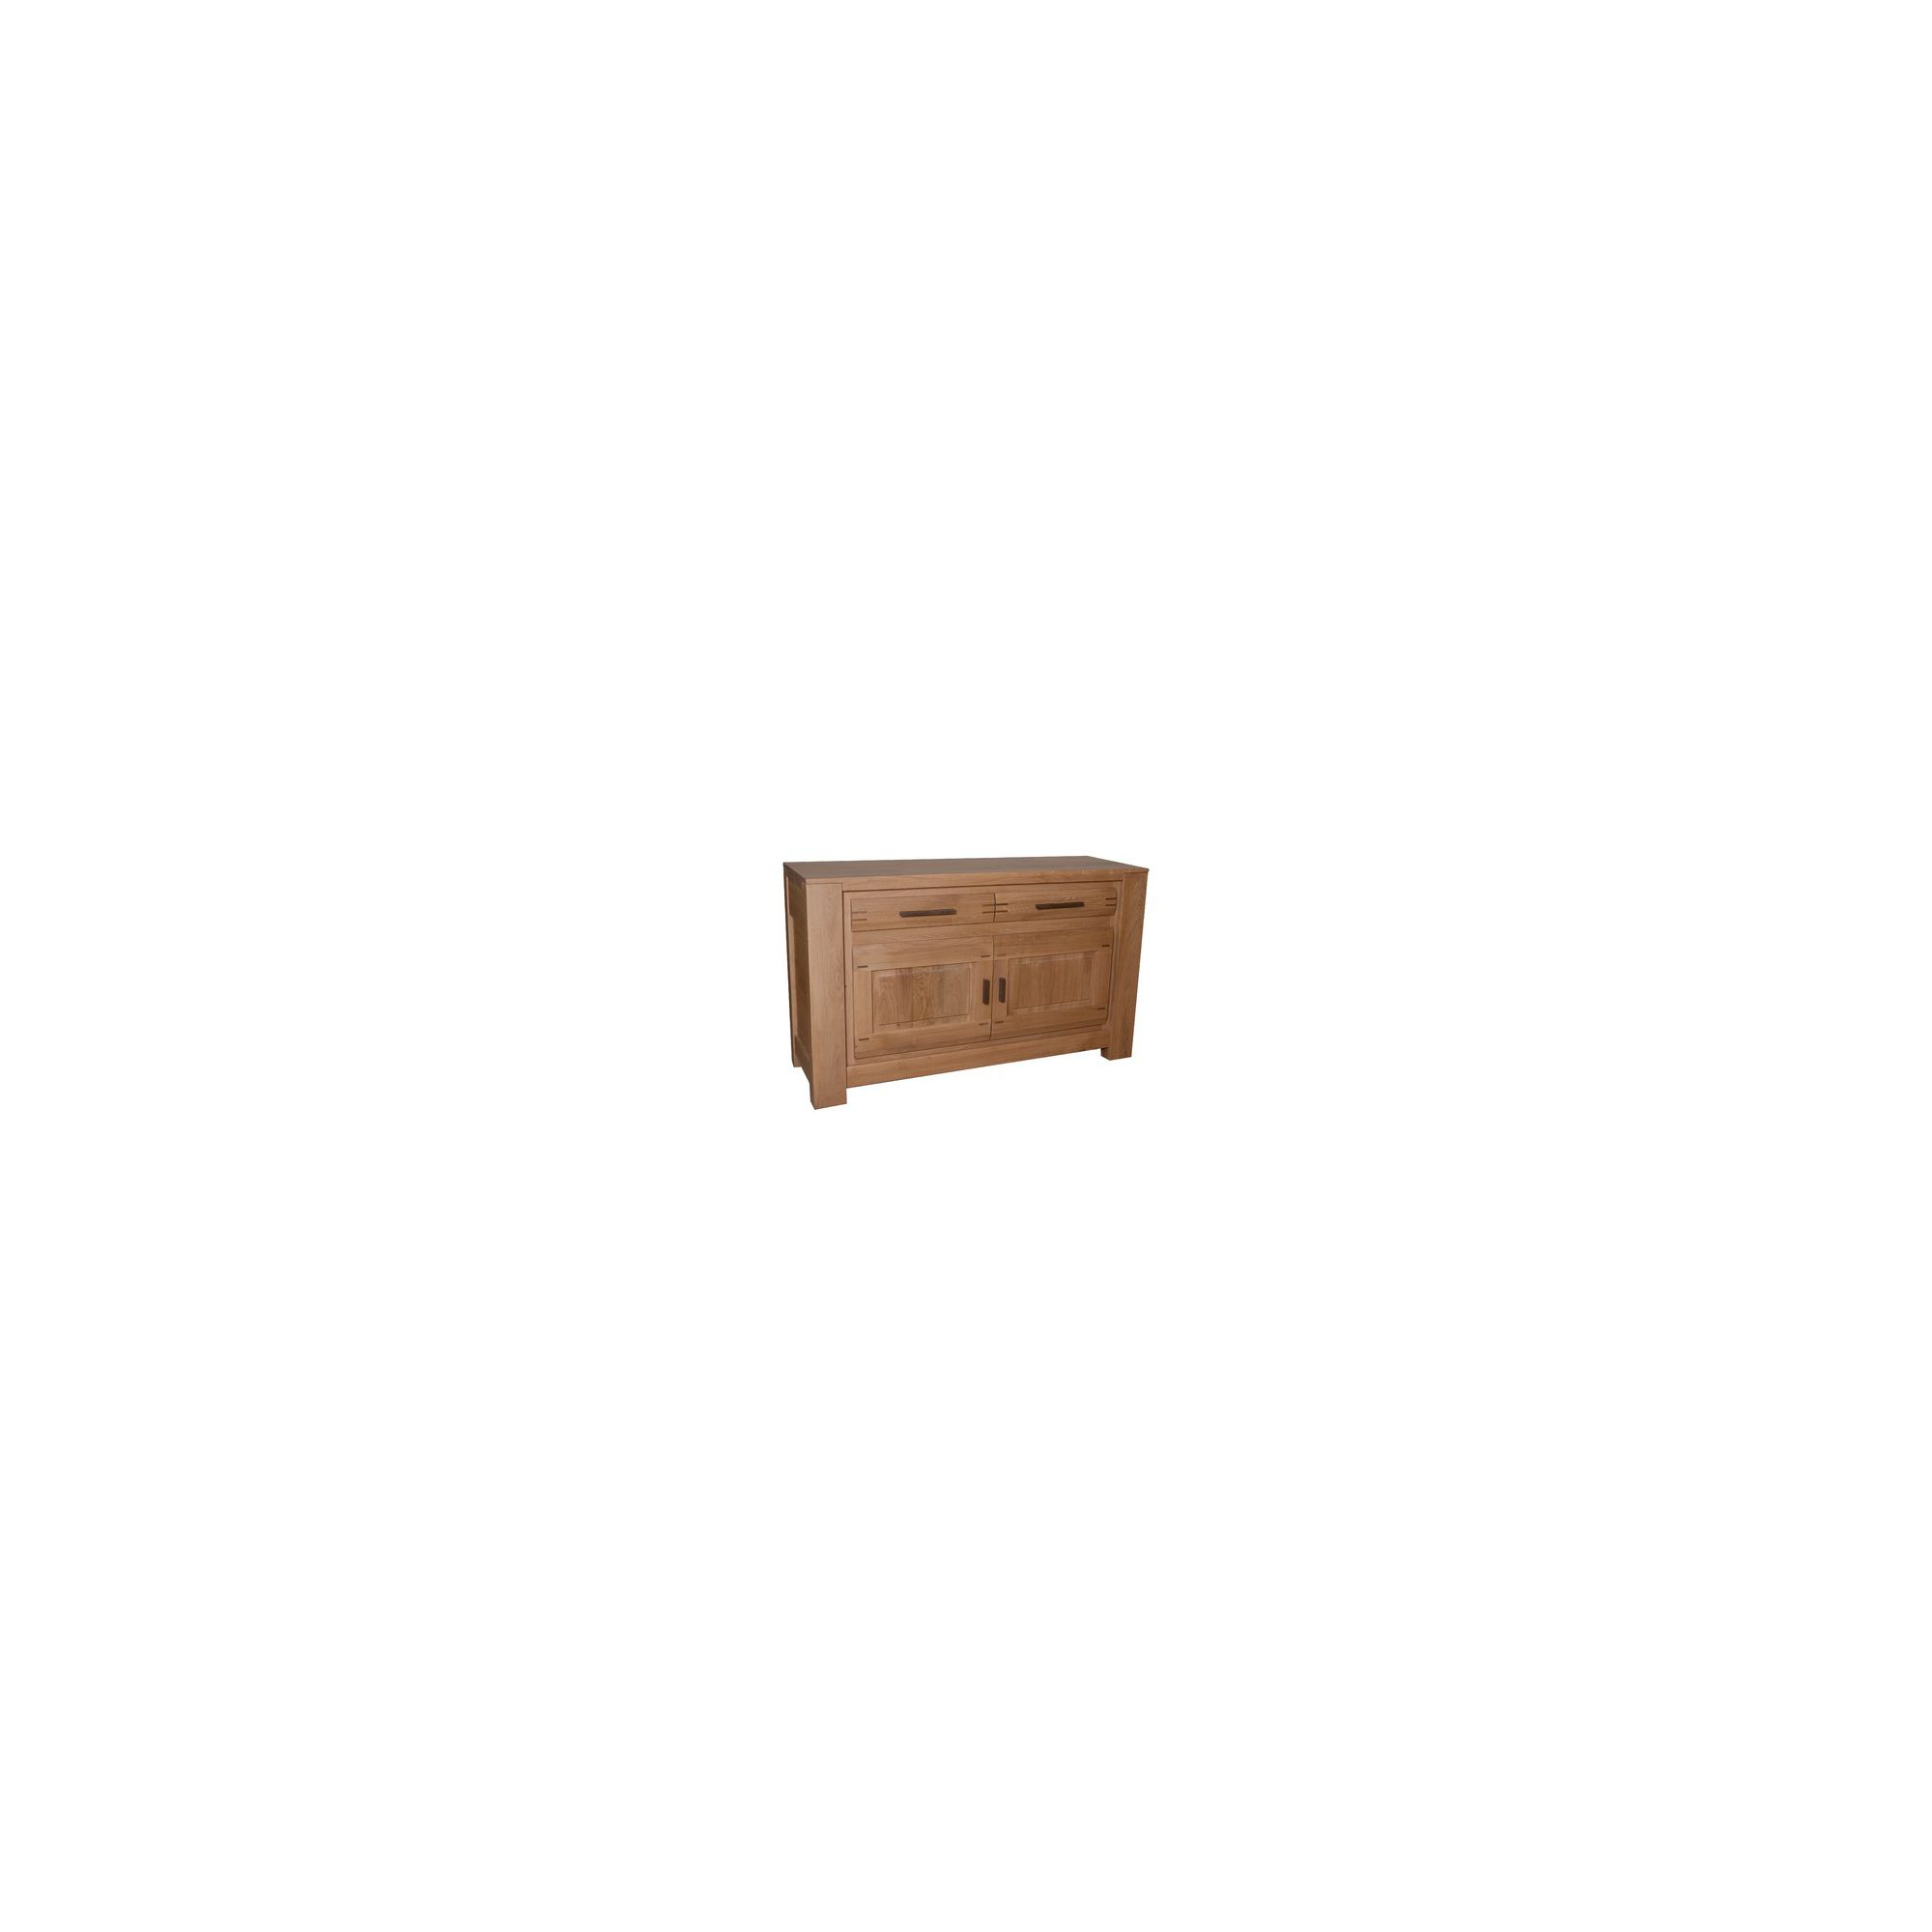 Sherry Designs Newbury Dining Small Oak Sideboard at Tesco Direct